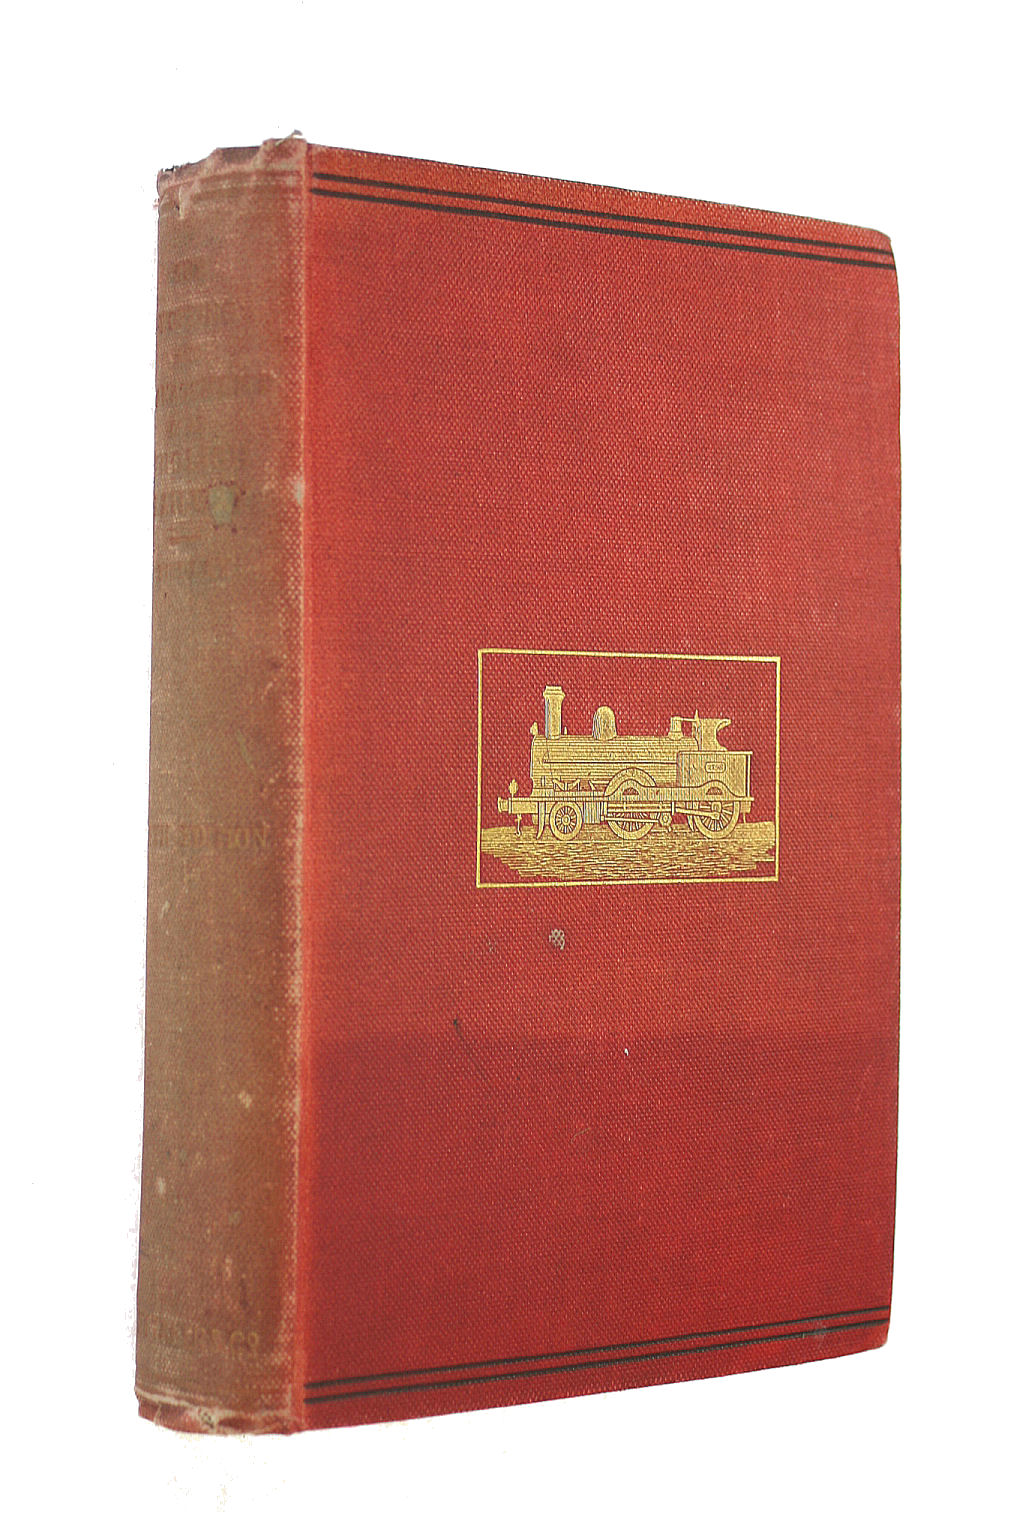 Image for The Working and Management of an English Railway ... Fifth edition ... enlarged, with biographical sketch. Edited by S. M. Phillp, etc